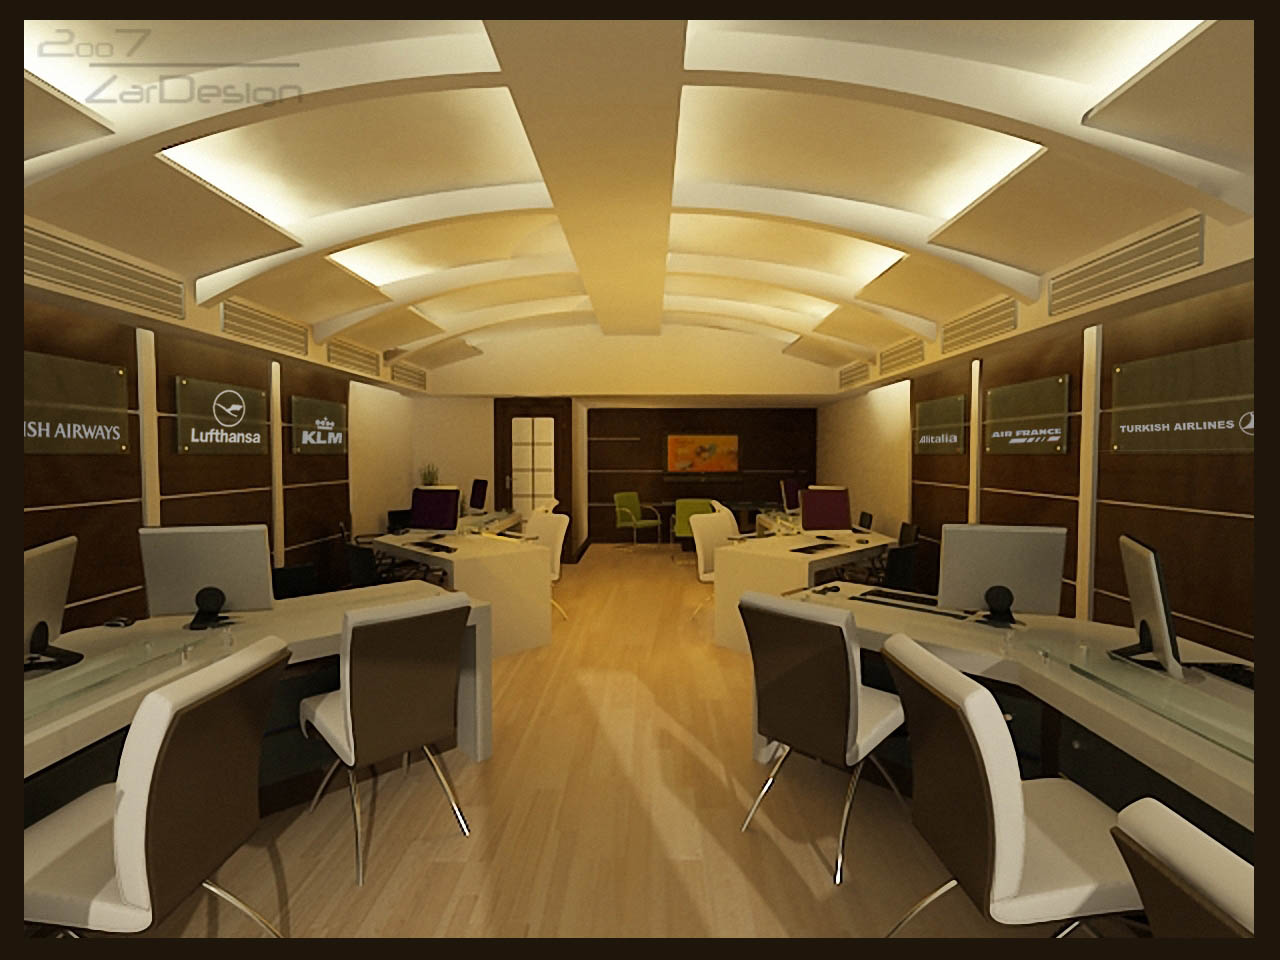 Shop design travel agency by shaghayegh sheri zarafshan for Interior design travel agency office